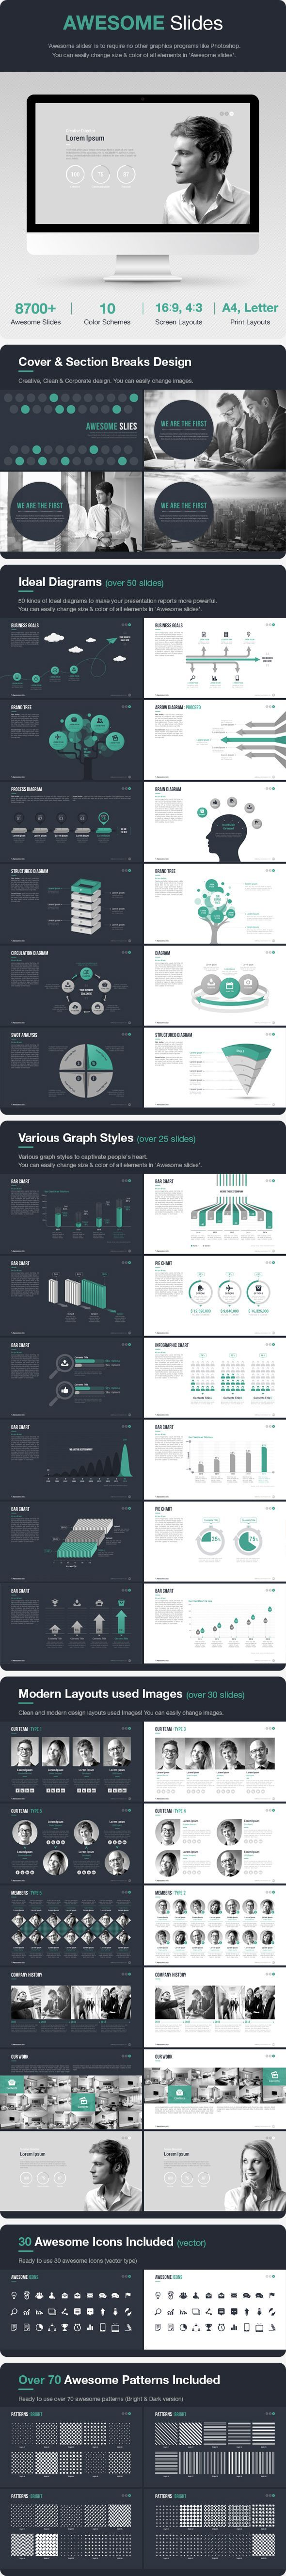 Awesome Slides - Business Powerpoint Templates design / graph / pattern / icon / keynote / infographic